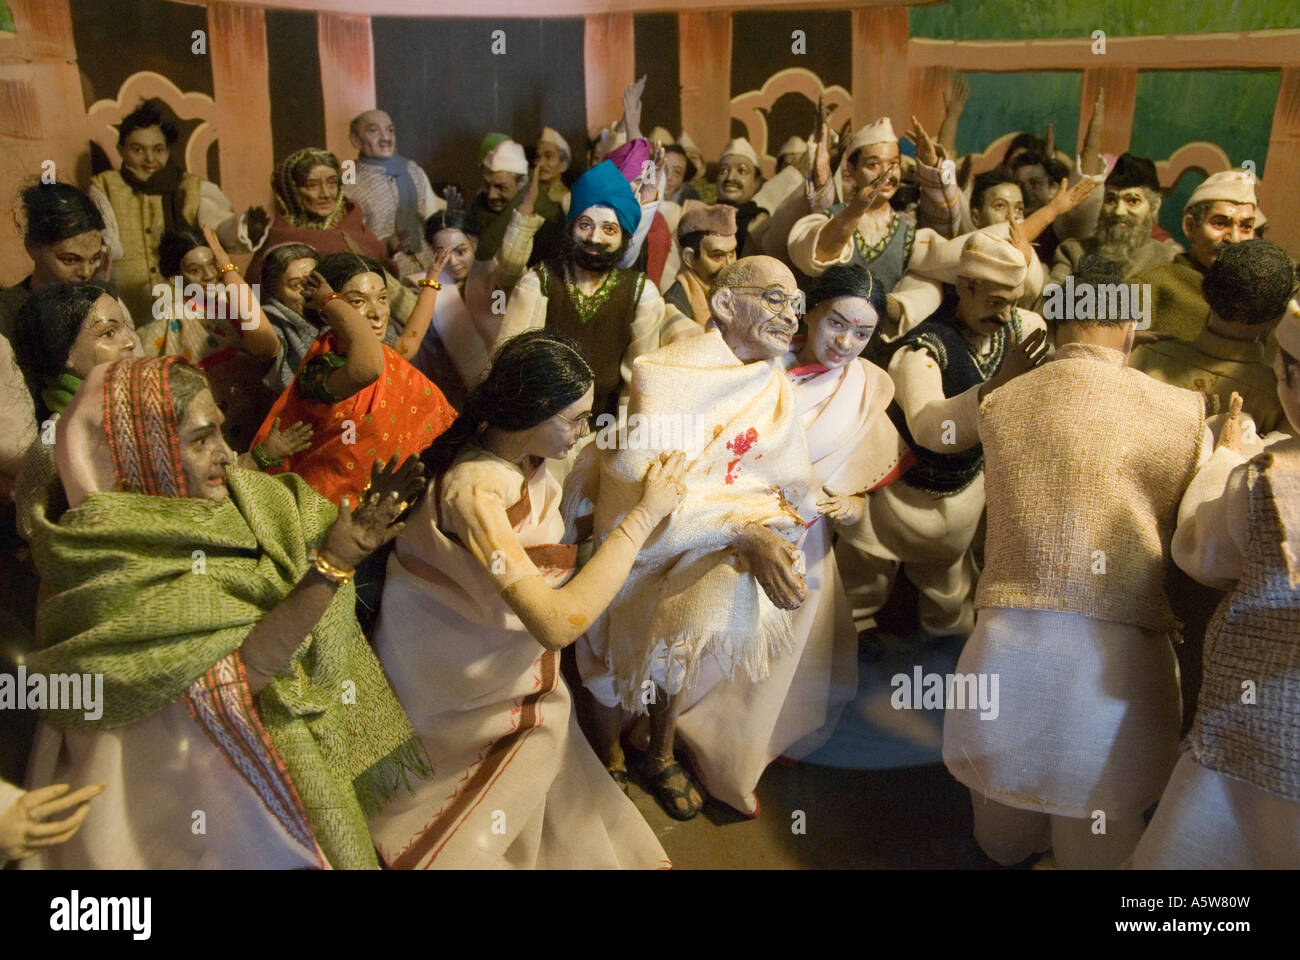 A model display depicts the assassination of Gandhi inside the Gandhi museum in India - Stock Image